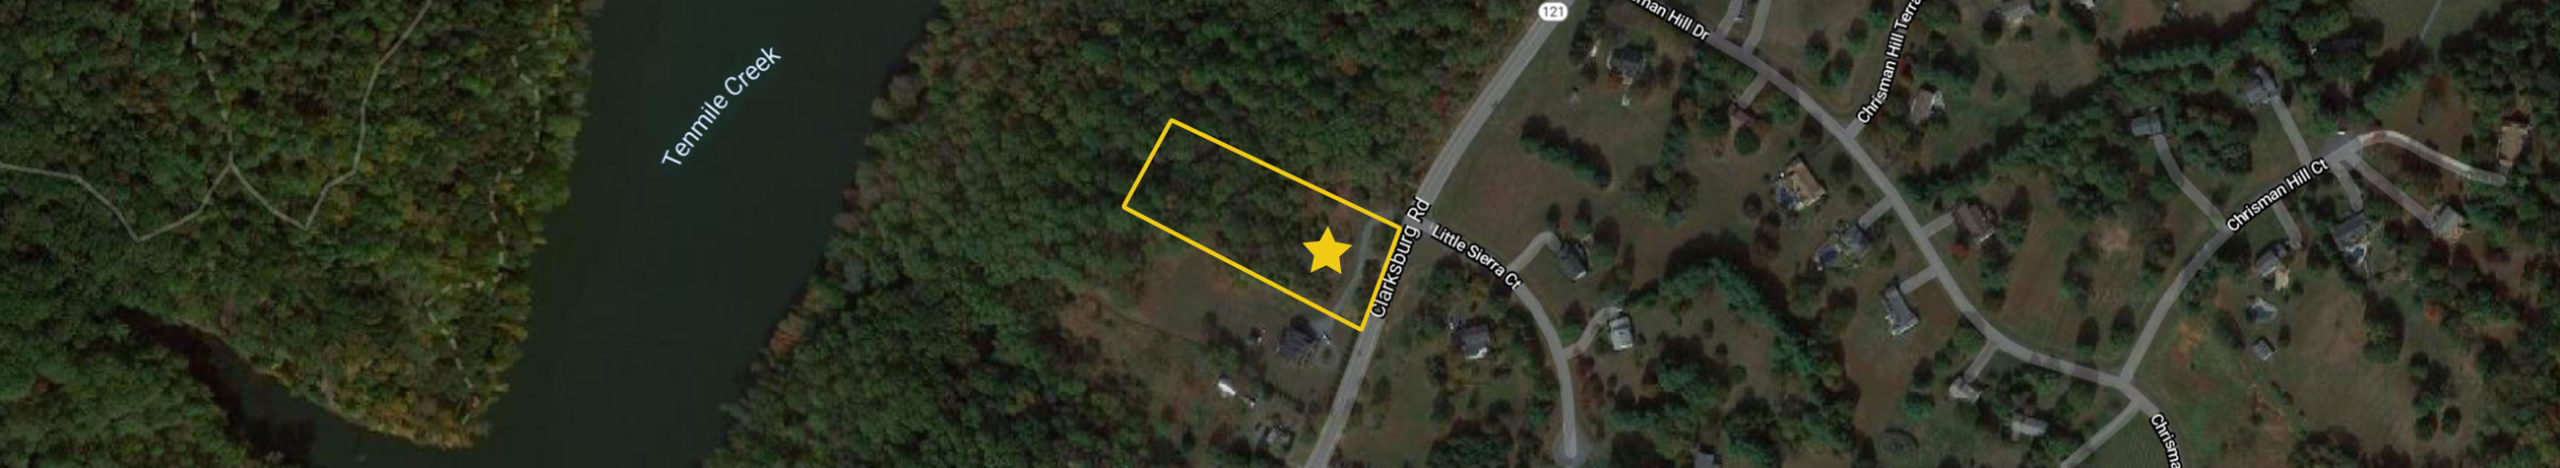 A closer aerial of 21120 Clarksburg Rd, showing Tenmile Creek and the surrounding homes and forested areas.